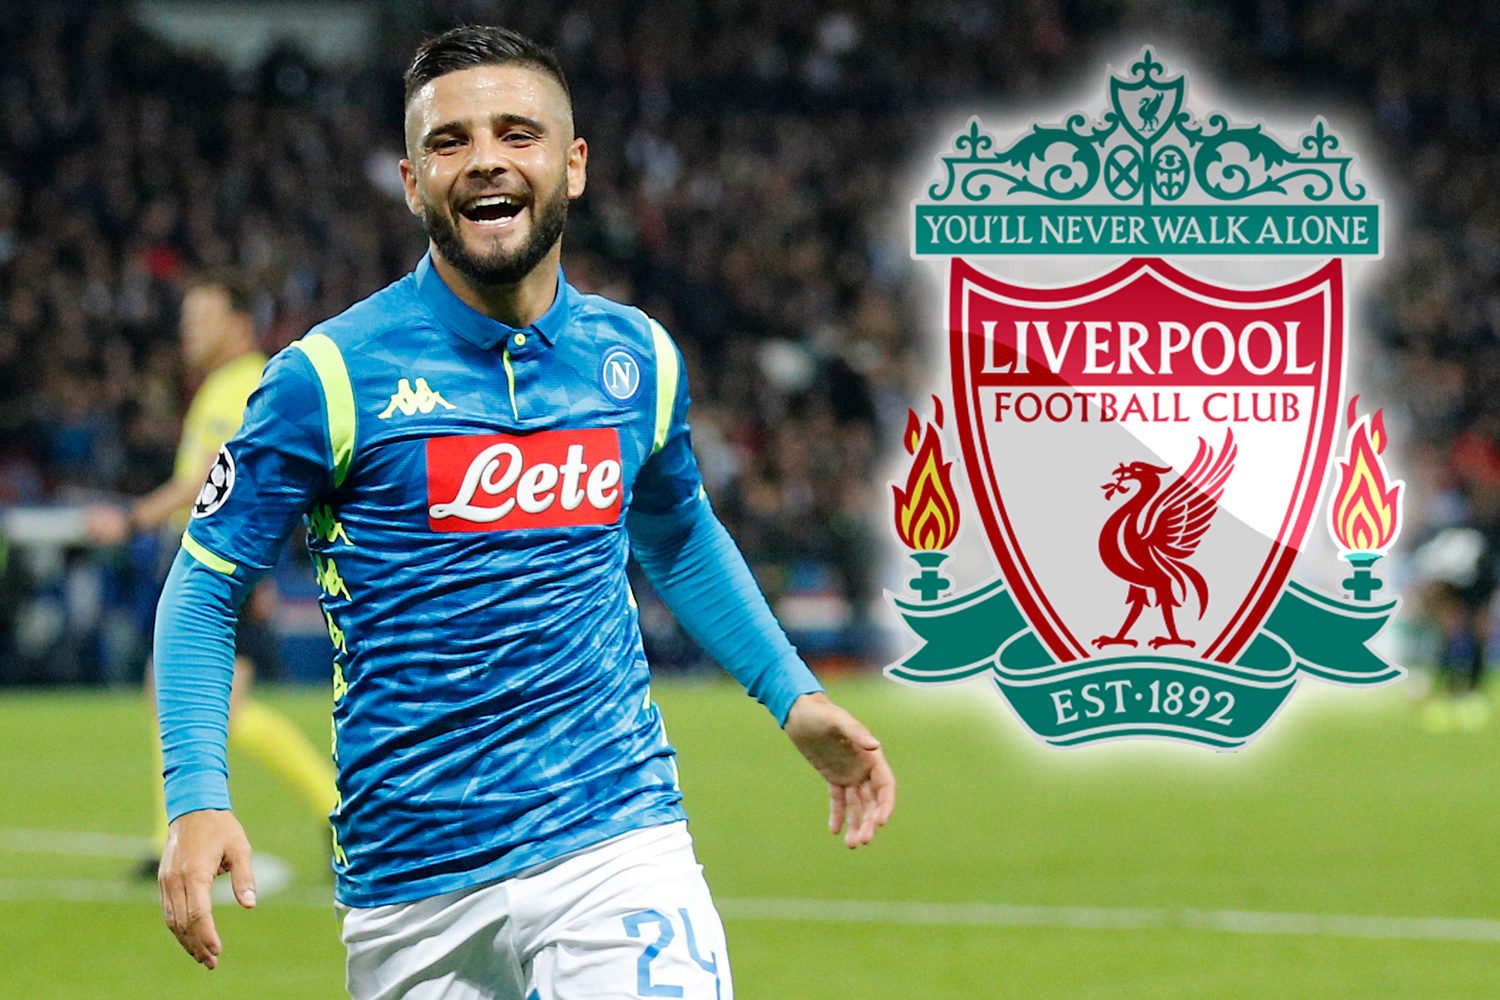 Liverpool make £61m Insigne bid to strengthen already lethal attack – but offer well below staggering valuation